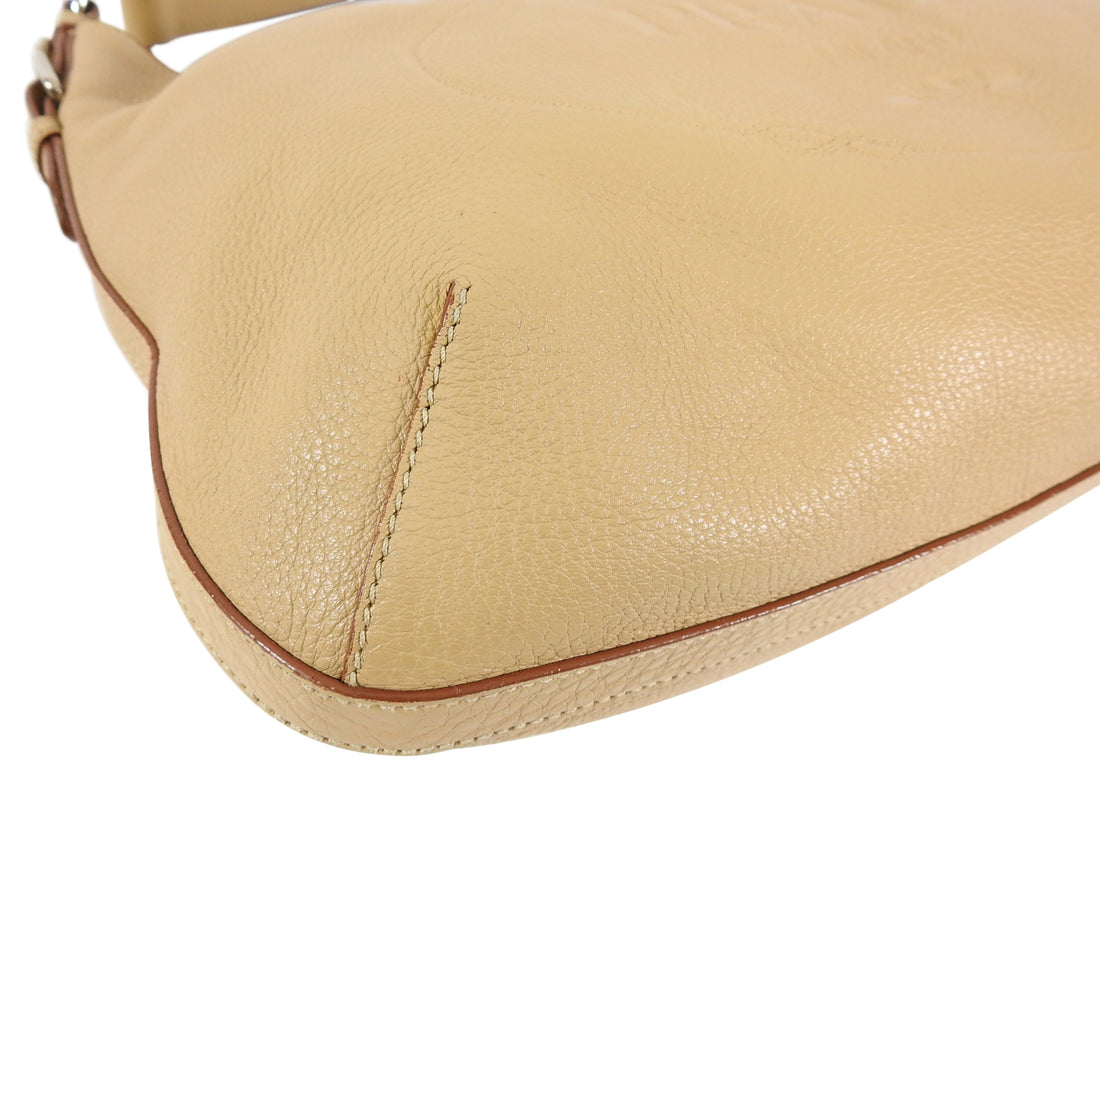 Prada Beige Logo Imprinted Leather Hobo Shoulder Bag